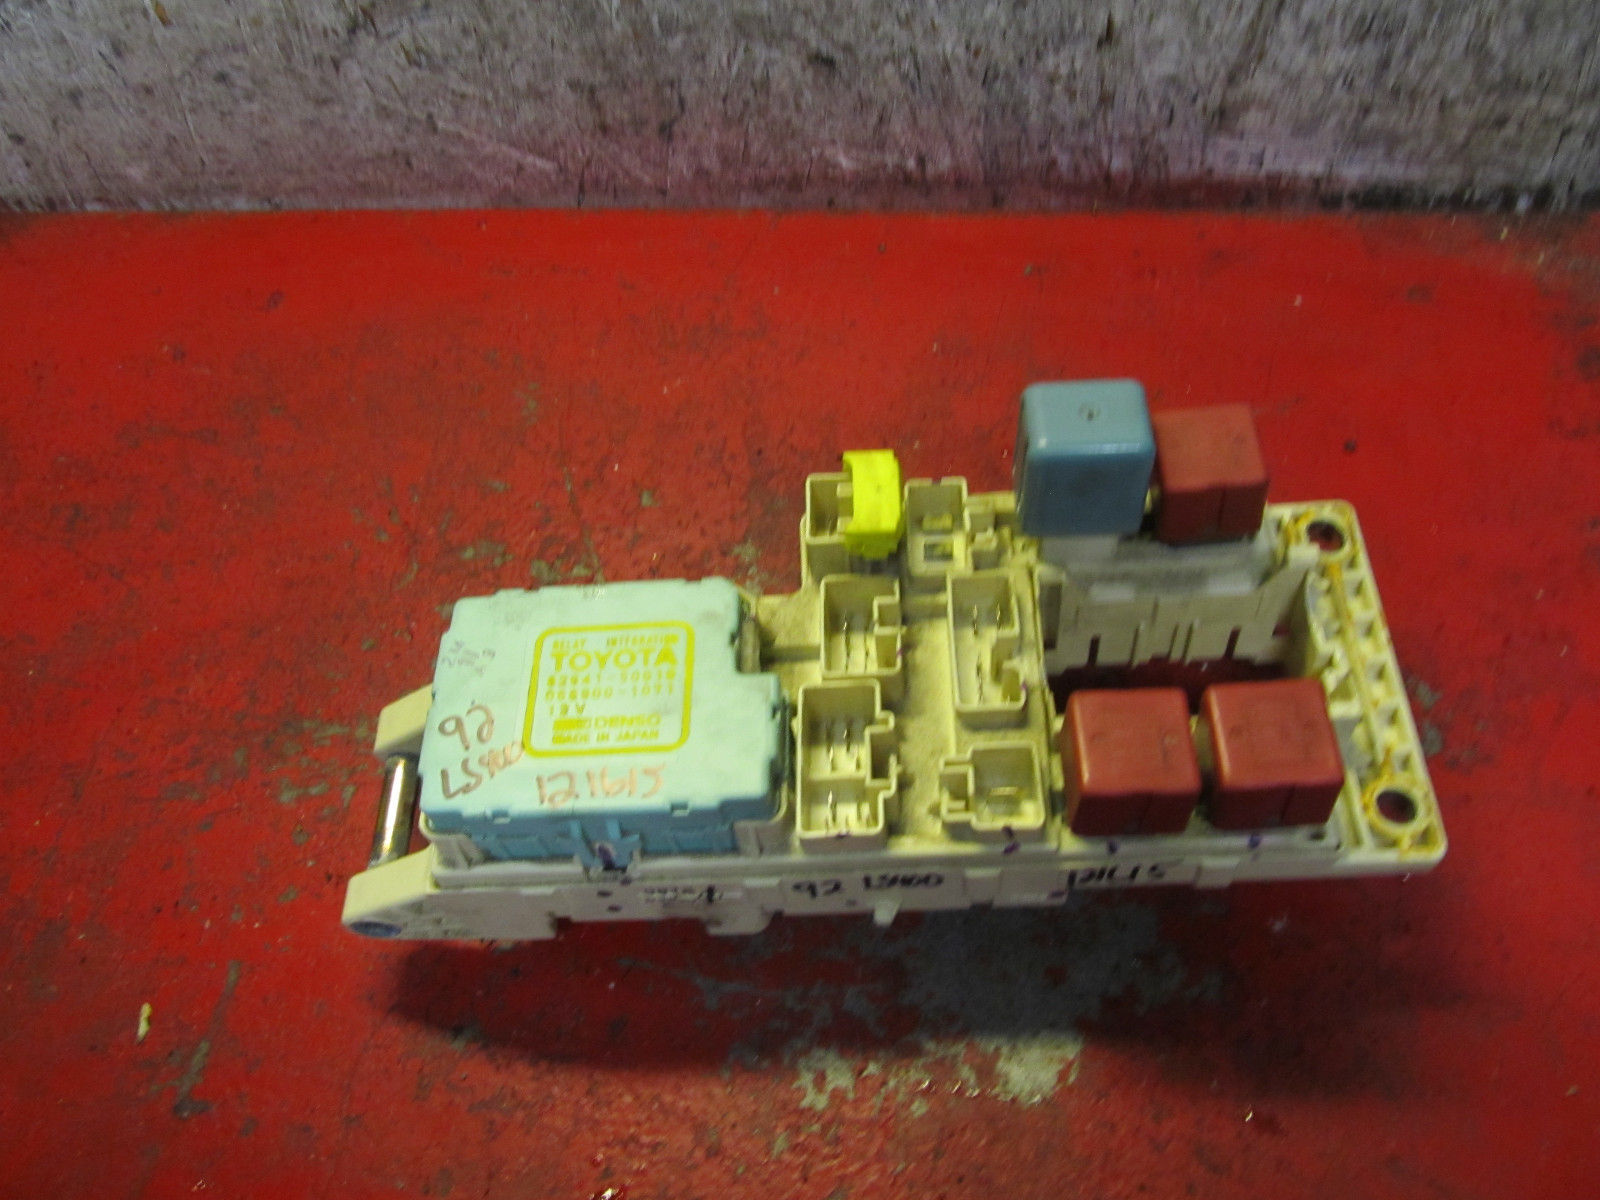 Lexus Ls400 Interior Fuse Box Electrical Wiring Diagrams 1993 Sc300 94 93 90 91 92 And Similar Items The Of A Car